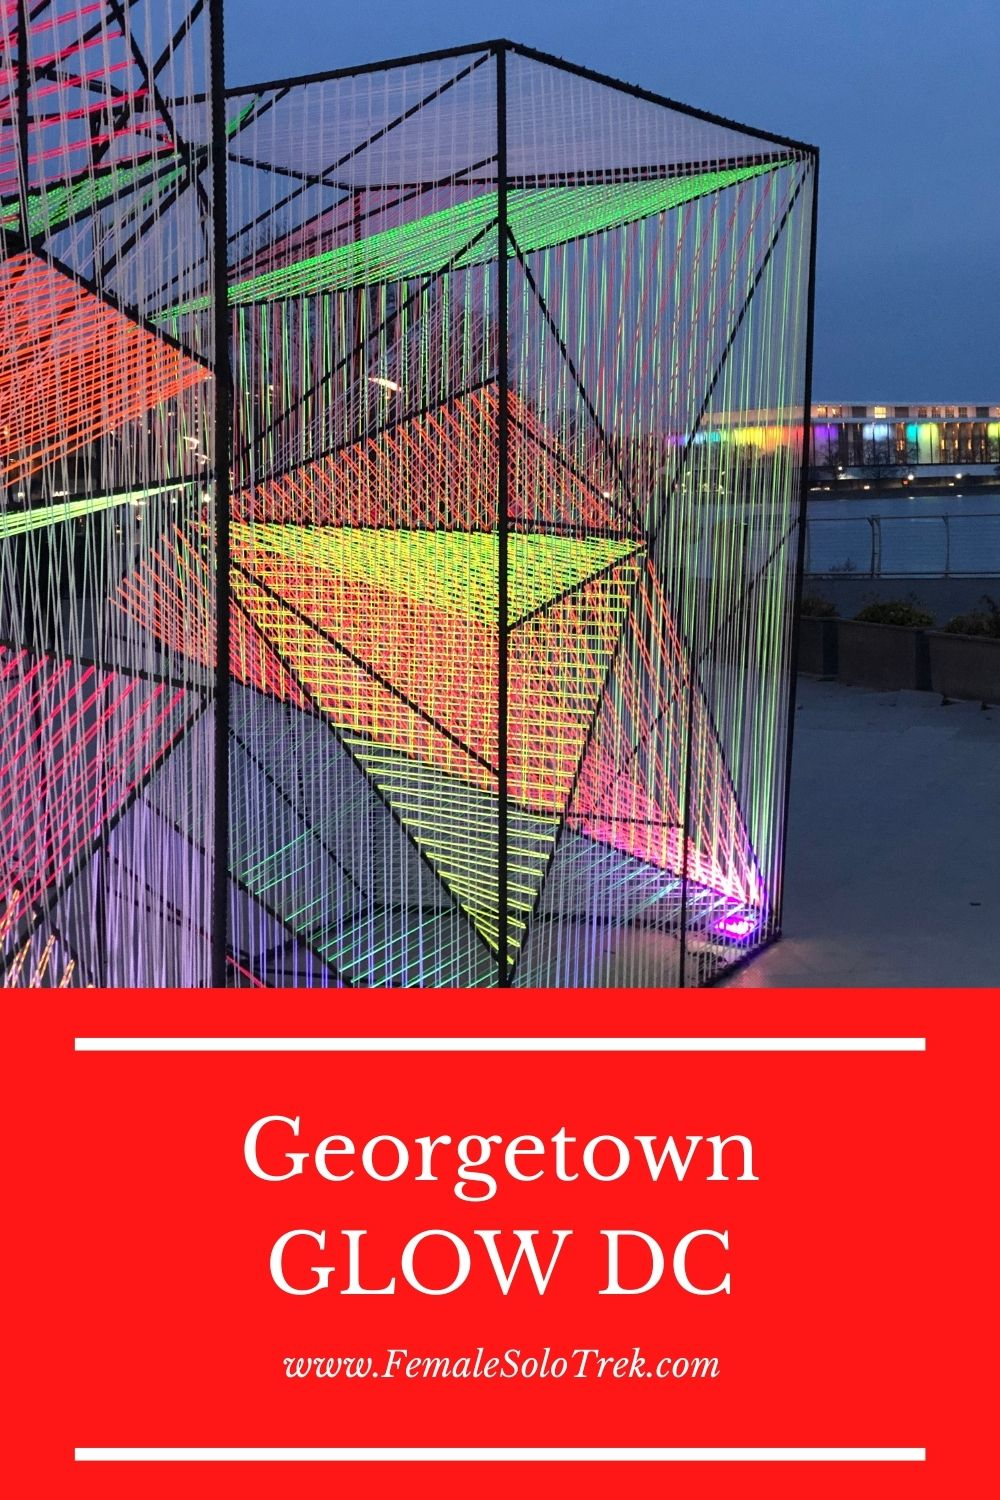 Georgetown GLOW DC is the city's first curated light show.